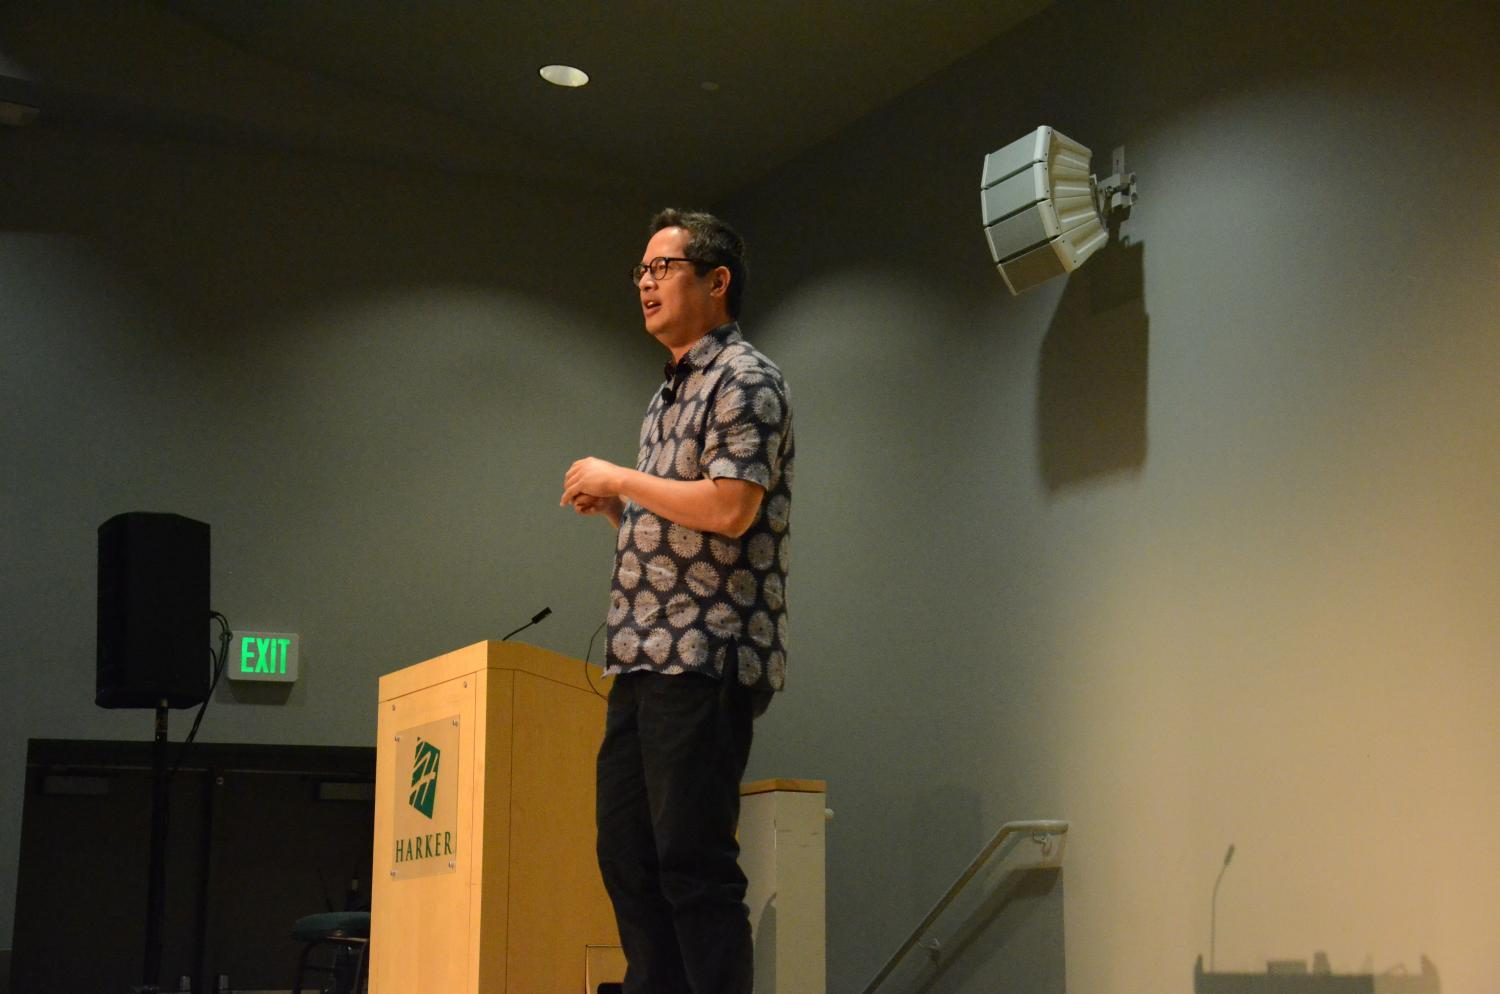 Executive Director of Stanford's Institute for Diversity in the Arts Jeff Chang speaks about his cultural background as a native of Honolulu. He cited reggae, Hawaiian folk and Hawaiian guitar music as three main music styles that drew him to hip-hop.